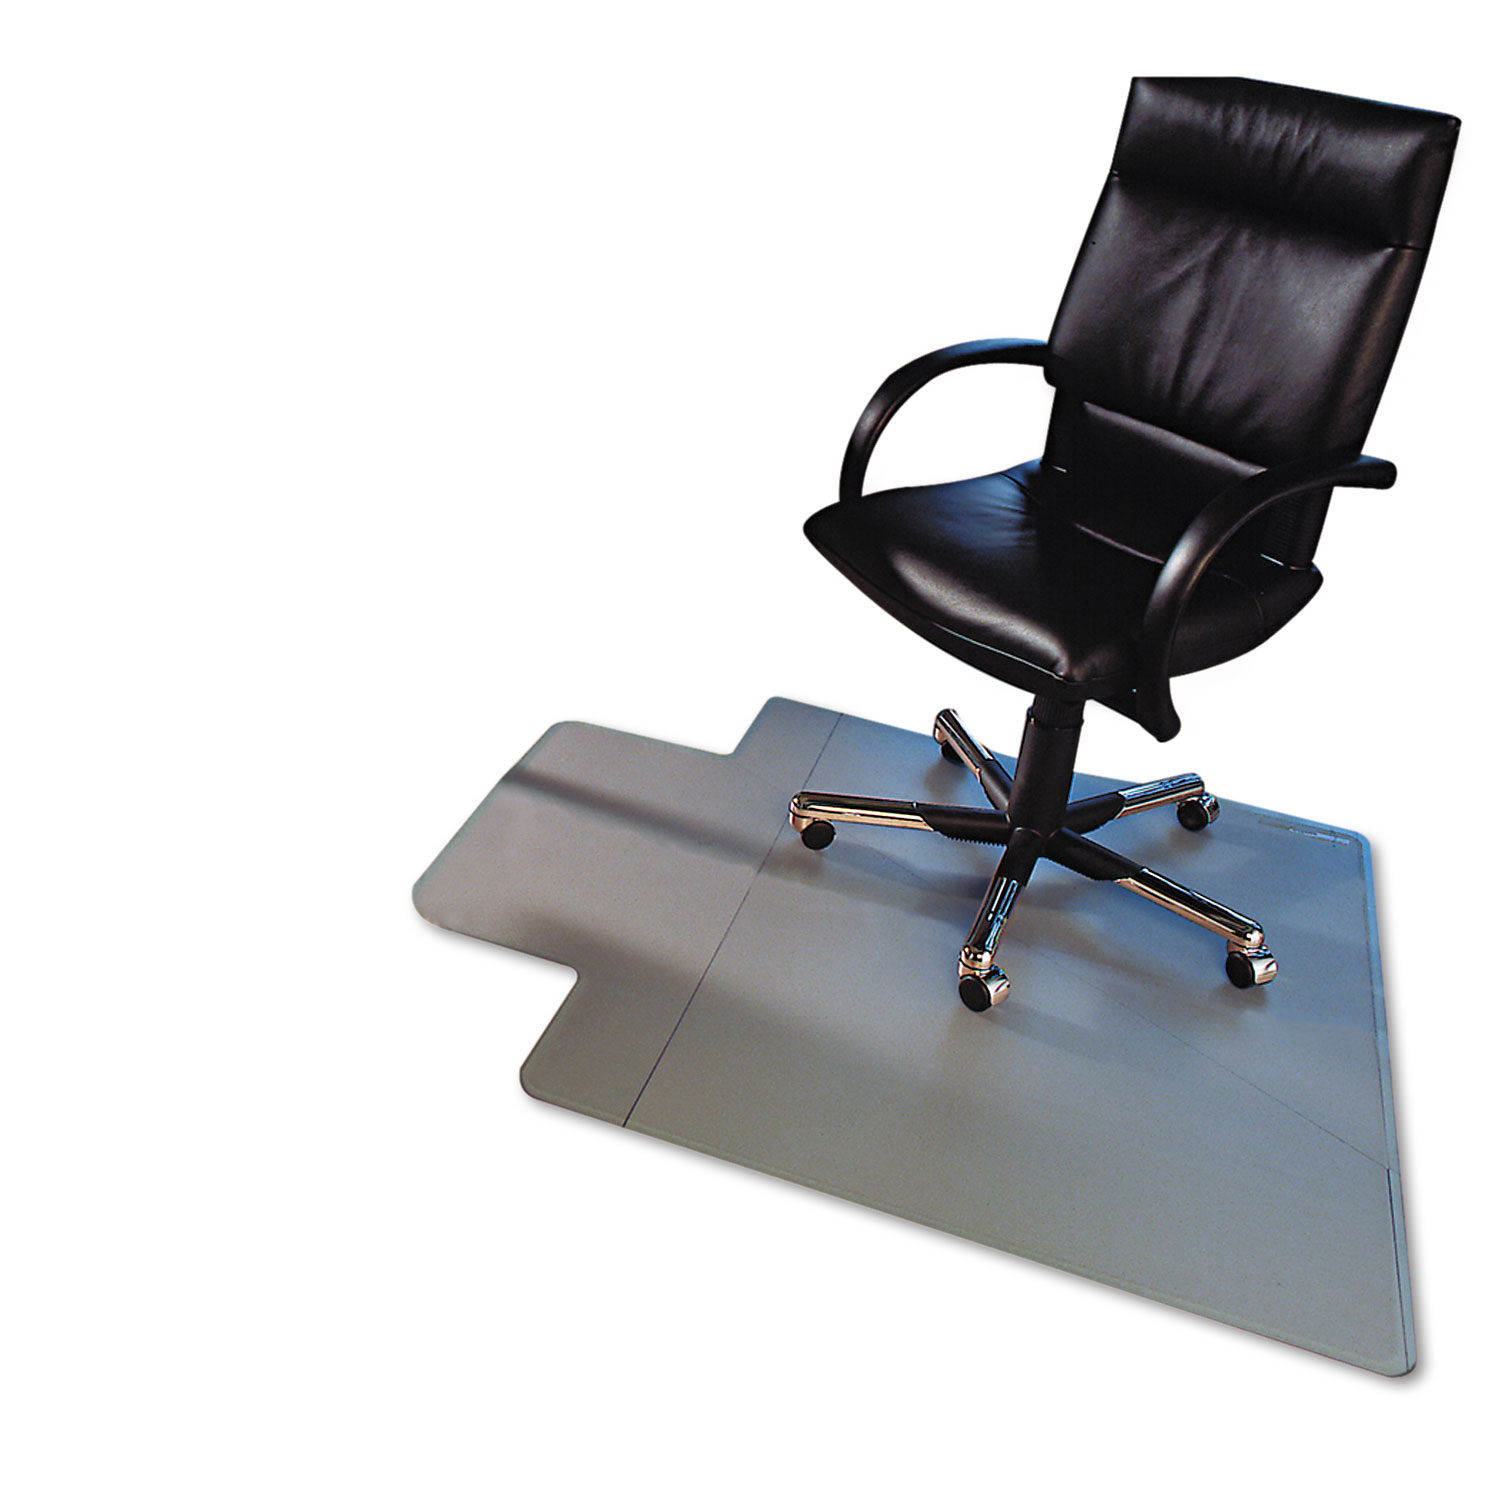 floortex chair mat pine kitchen chairs ireland cleartex ultimat polycarbonate for low med pile